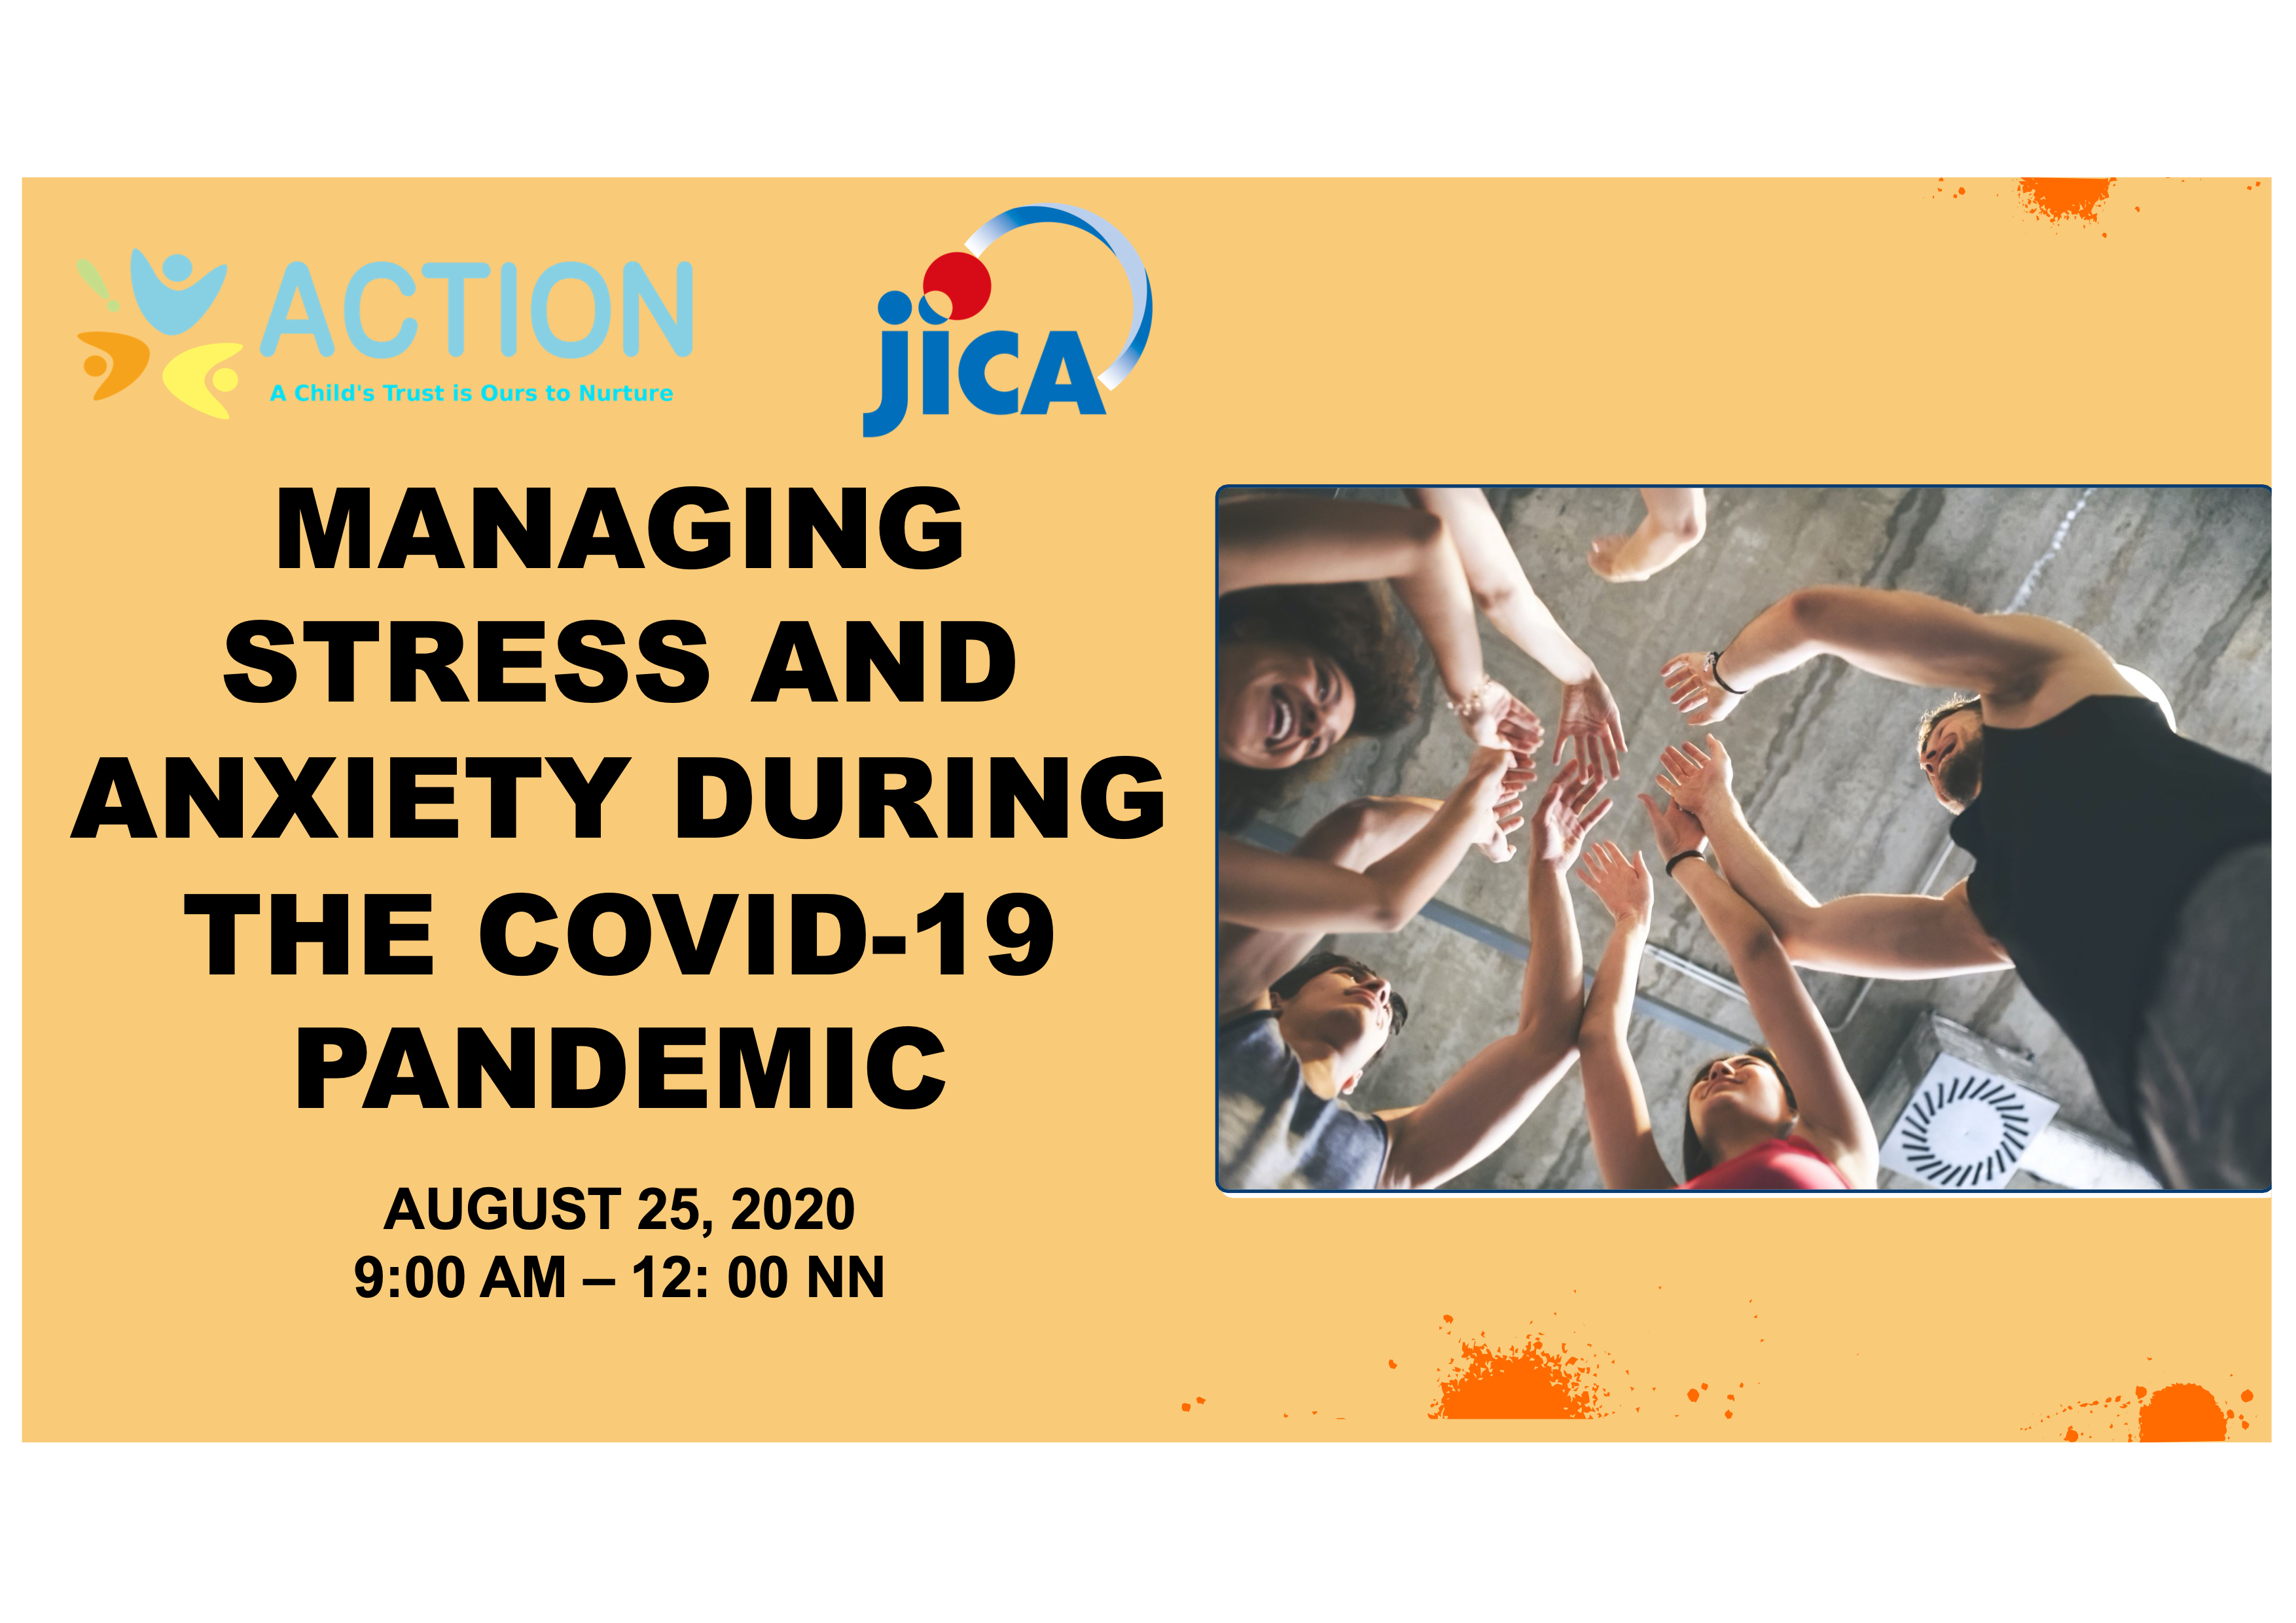 Managing-Stress-and-Anxiety-during-the-COVID-19-Pandemic_Full-Presentation